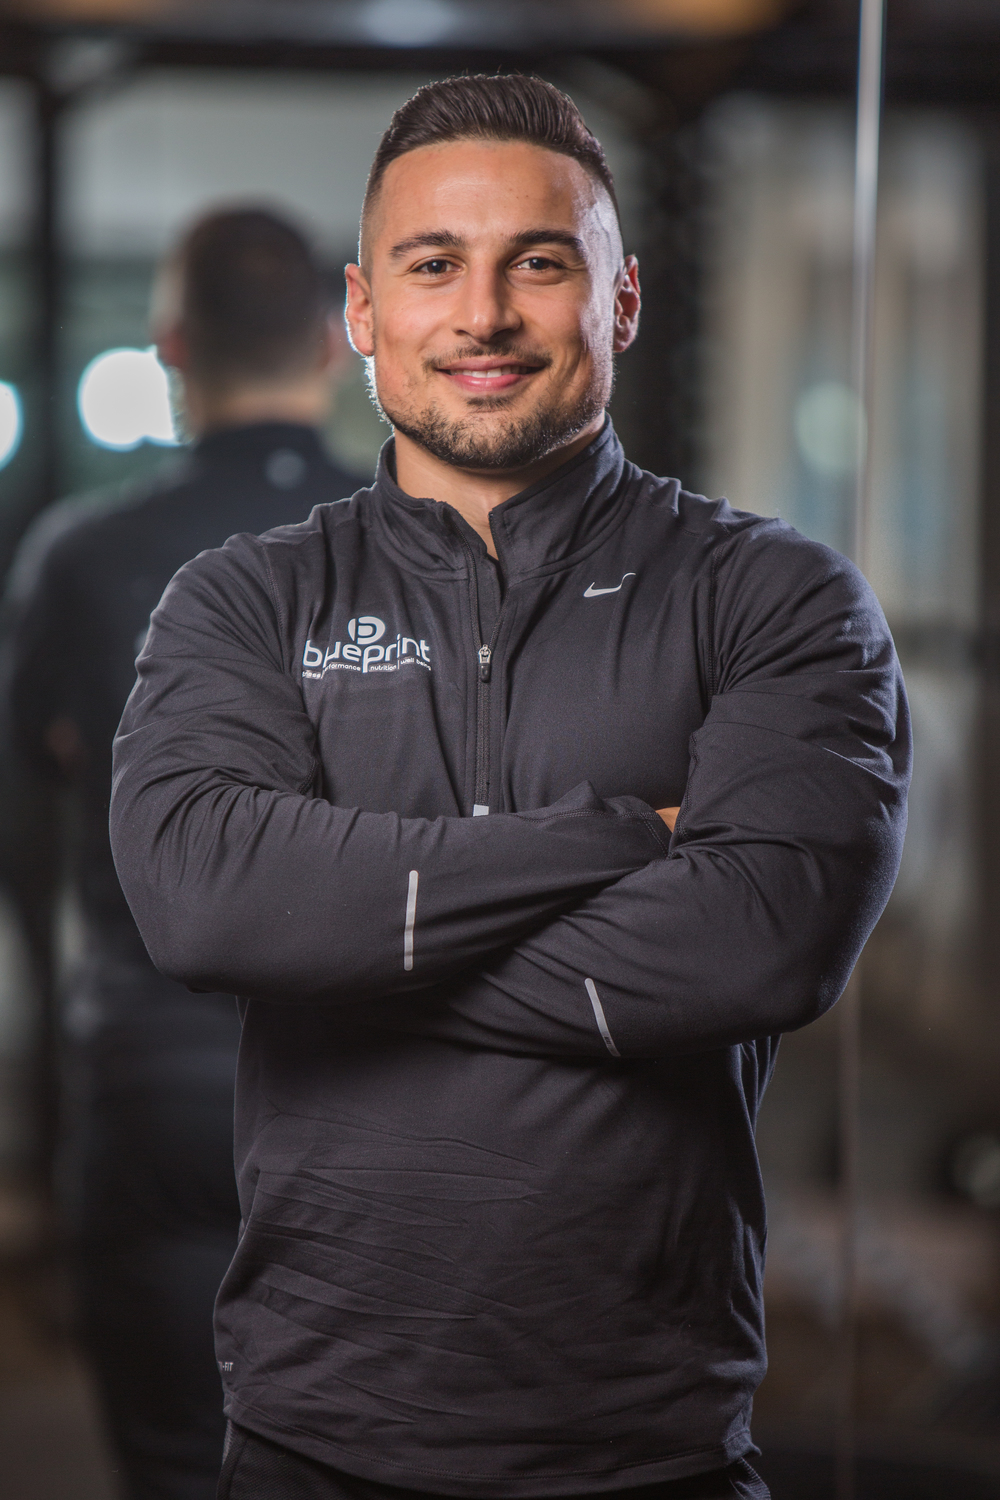 Chris Constantinou - Personal Trainer & Fitness Director at Blueprint Fitness